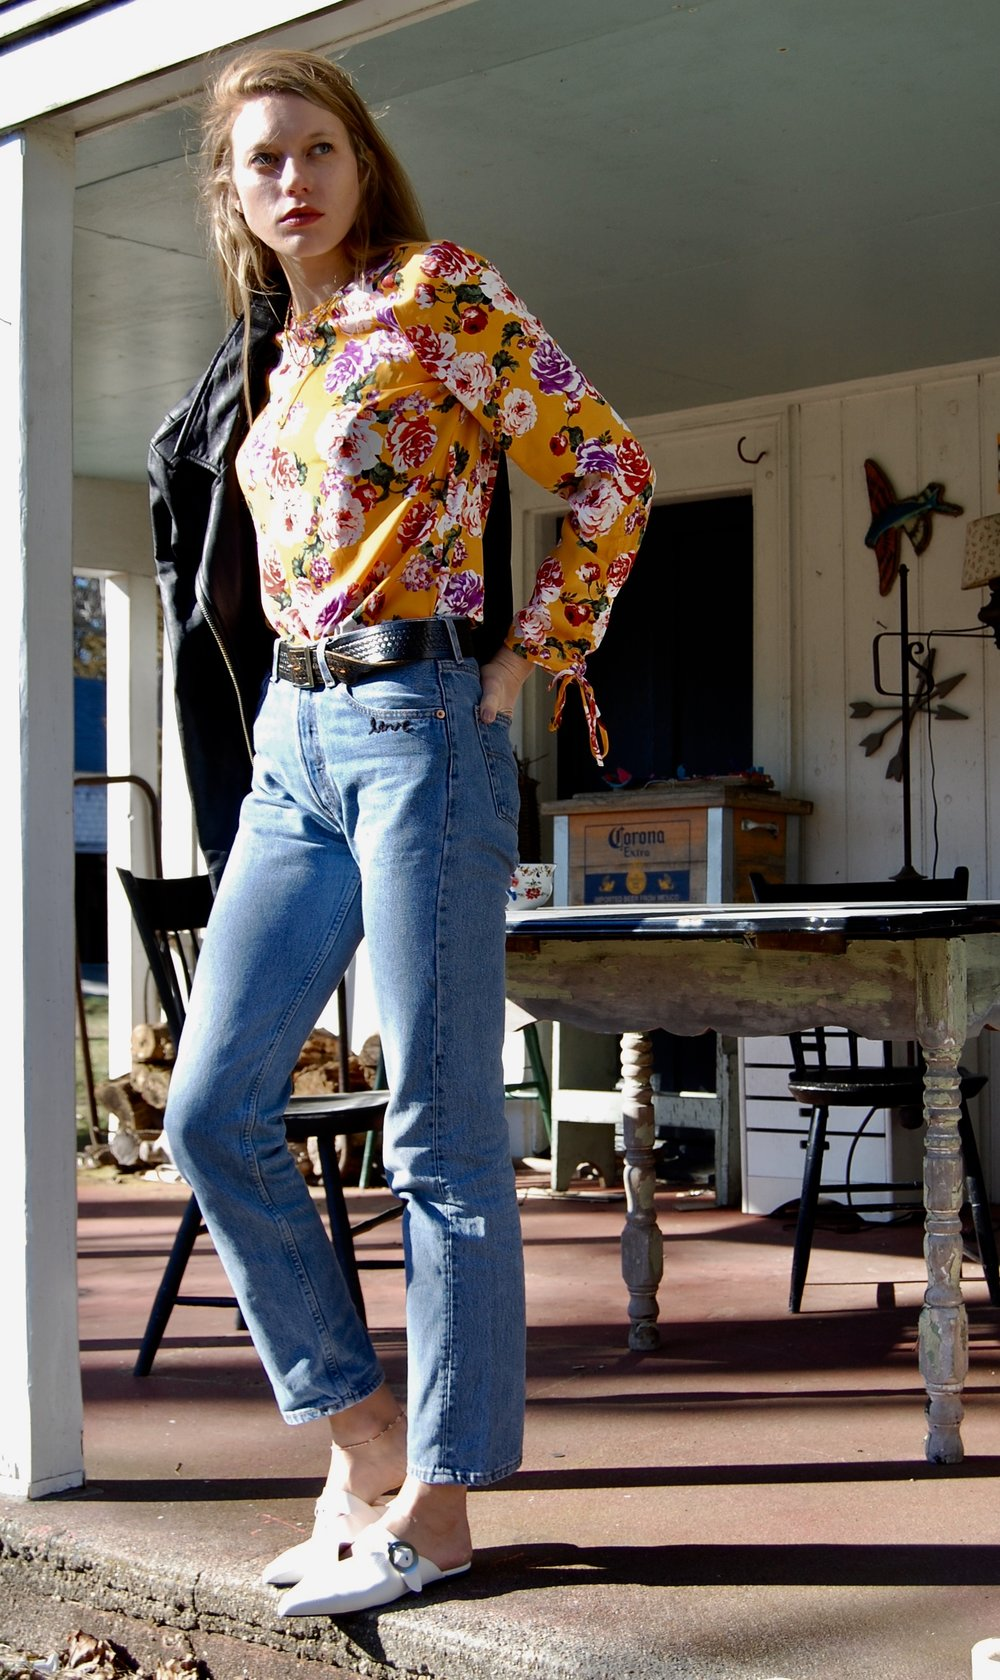 Shirt: Target . I seriously love this shirt. Any other mommas out there who don't have time to bring clothes to the dry cleaners? Me! So this shirt is nice because it still feels fashionable and nice but go ahead throw it in the washer.  Jeans: Vintage Levis! Found this at Garment district in Boston. Seriously can never go wrong with vintage levis.